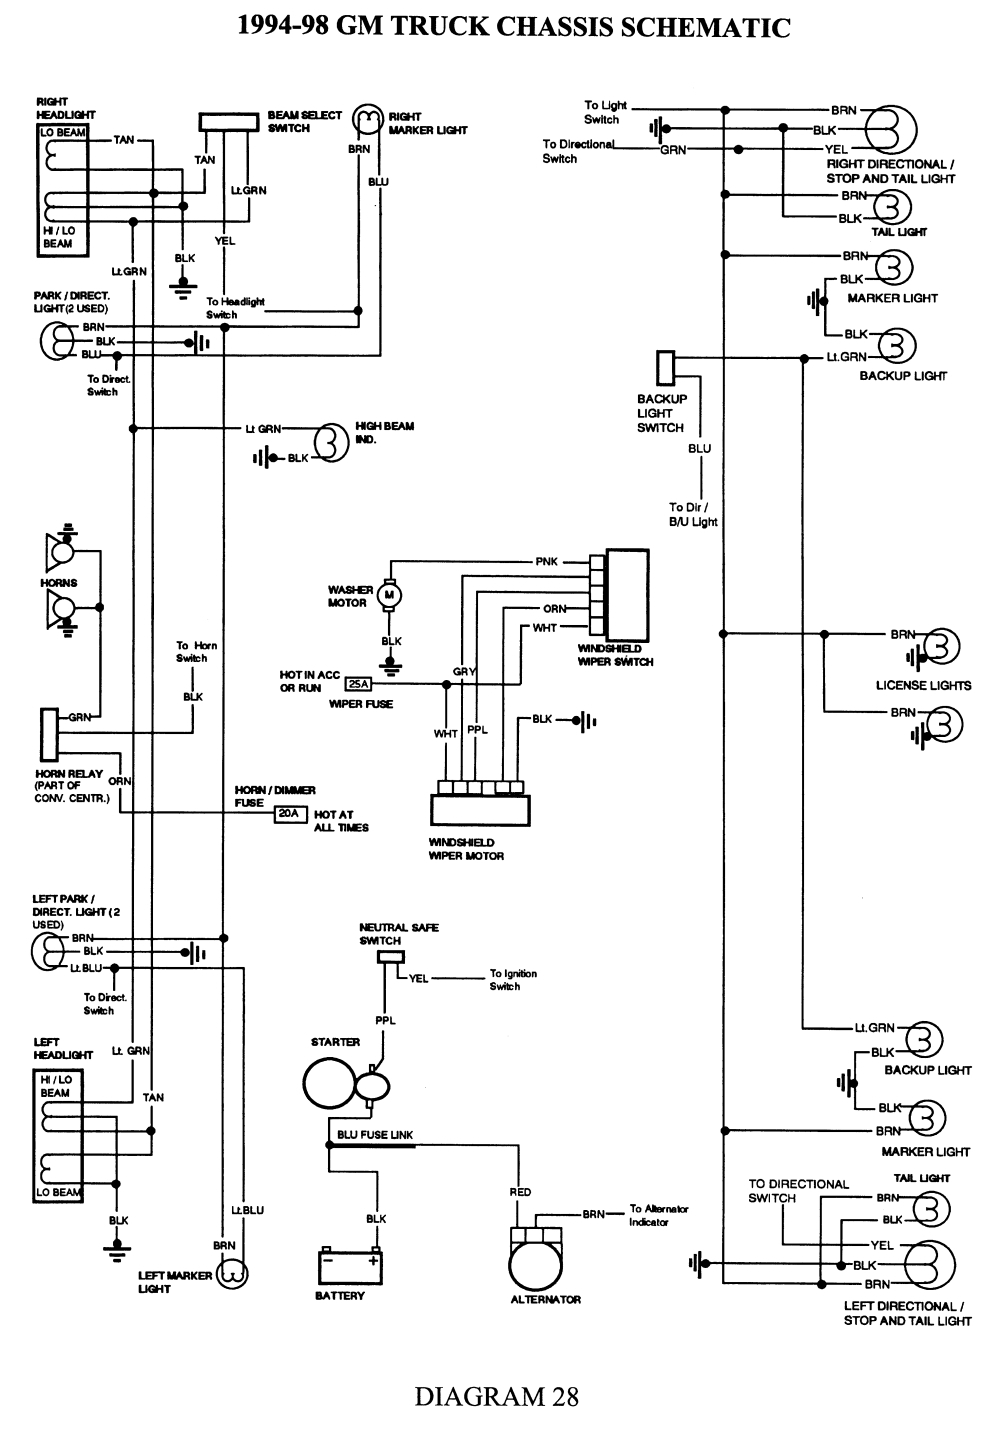 2001 Chevy Tahoe Interior Light Wiring Diagram Auto Electrical Dc215 Serial Cable Diagramgif Colors